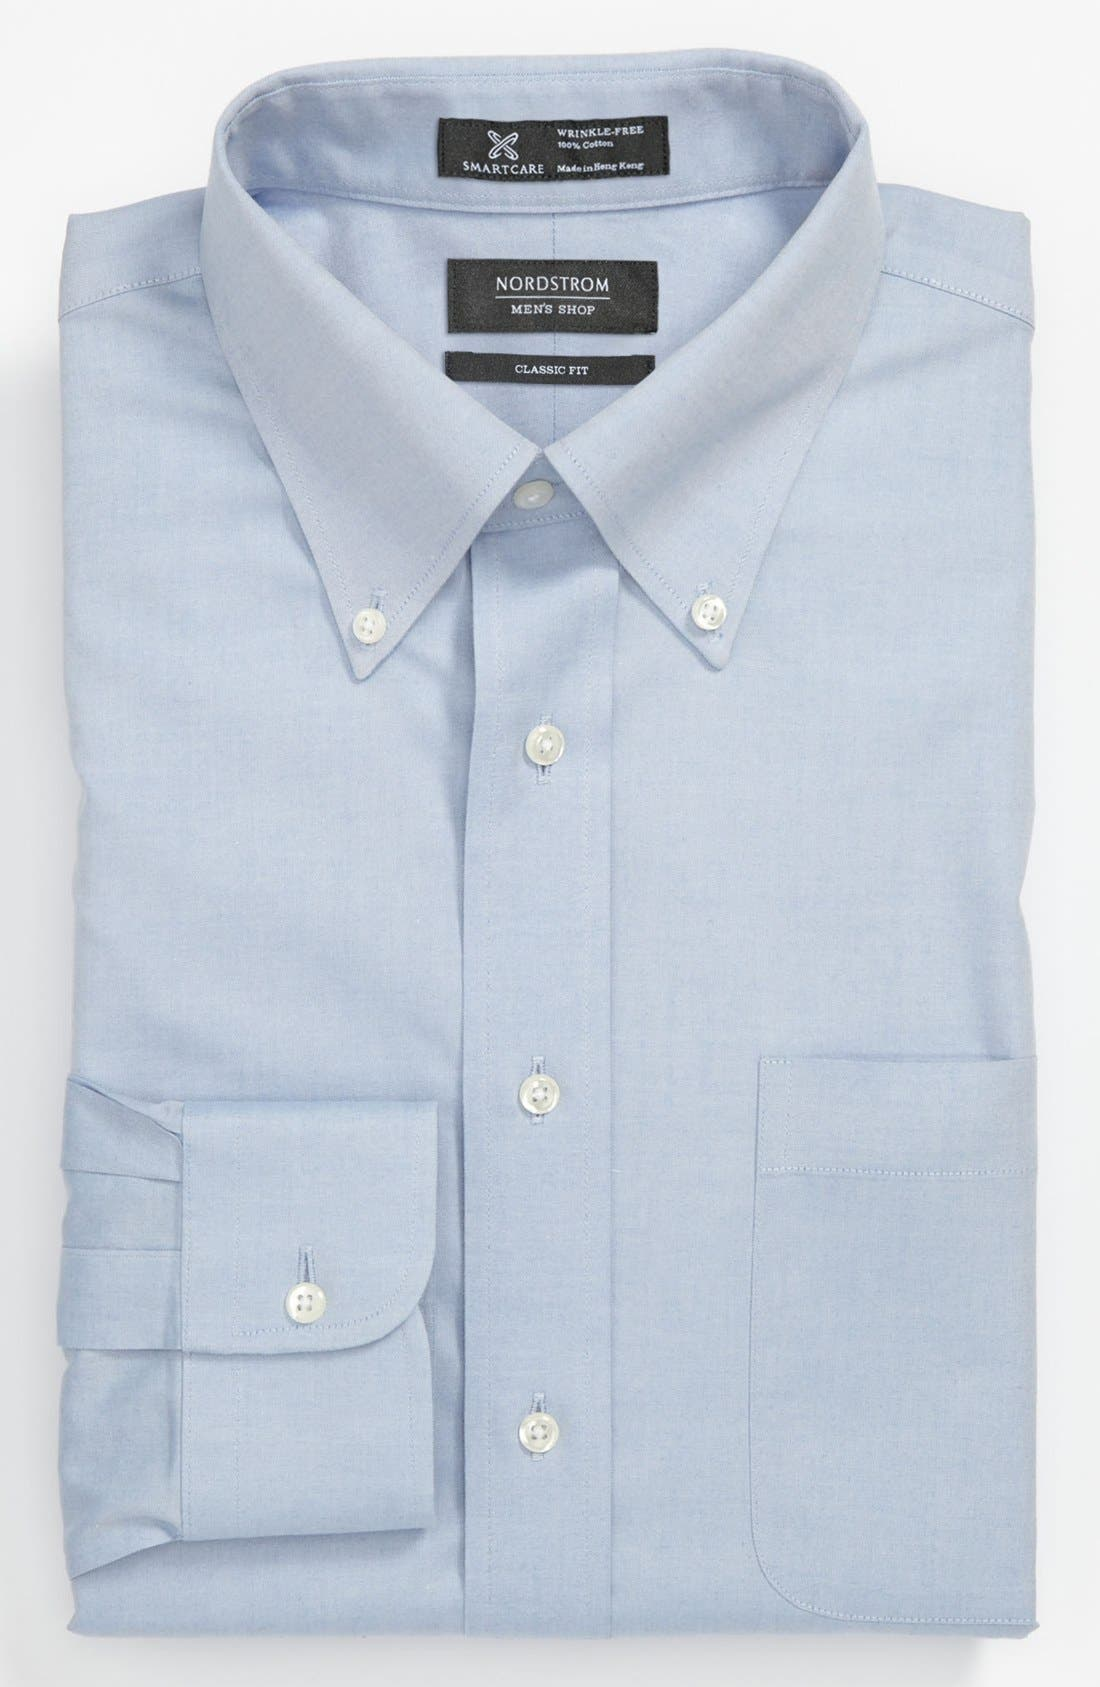 Nordstrom Men's Shop Smartcare™ Classic Fit Pinpoint Dress Shirt (Online Only)